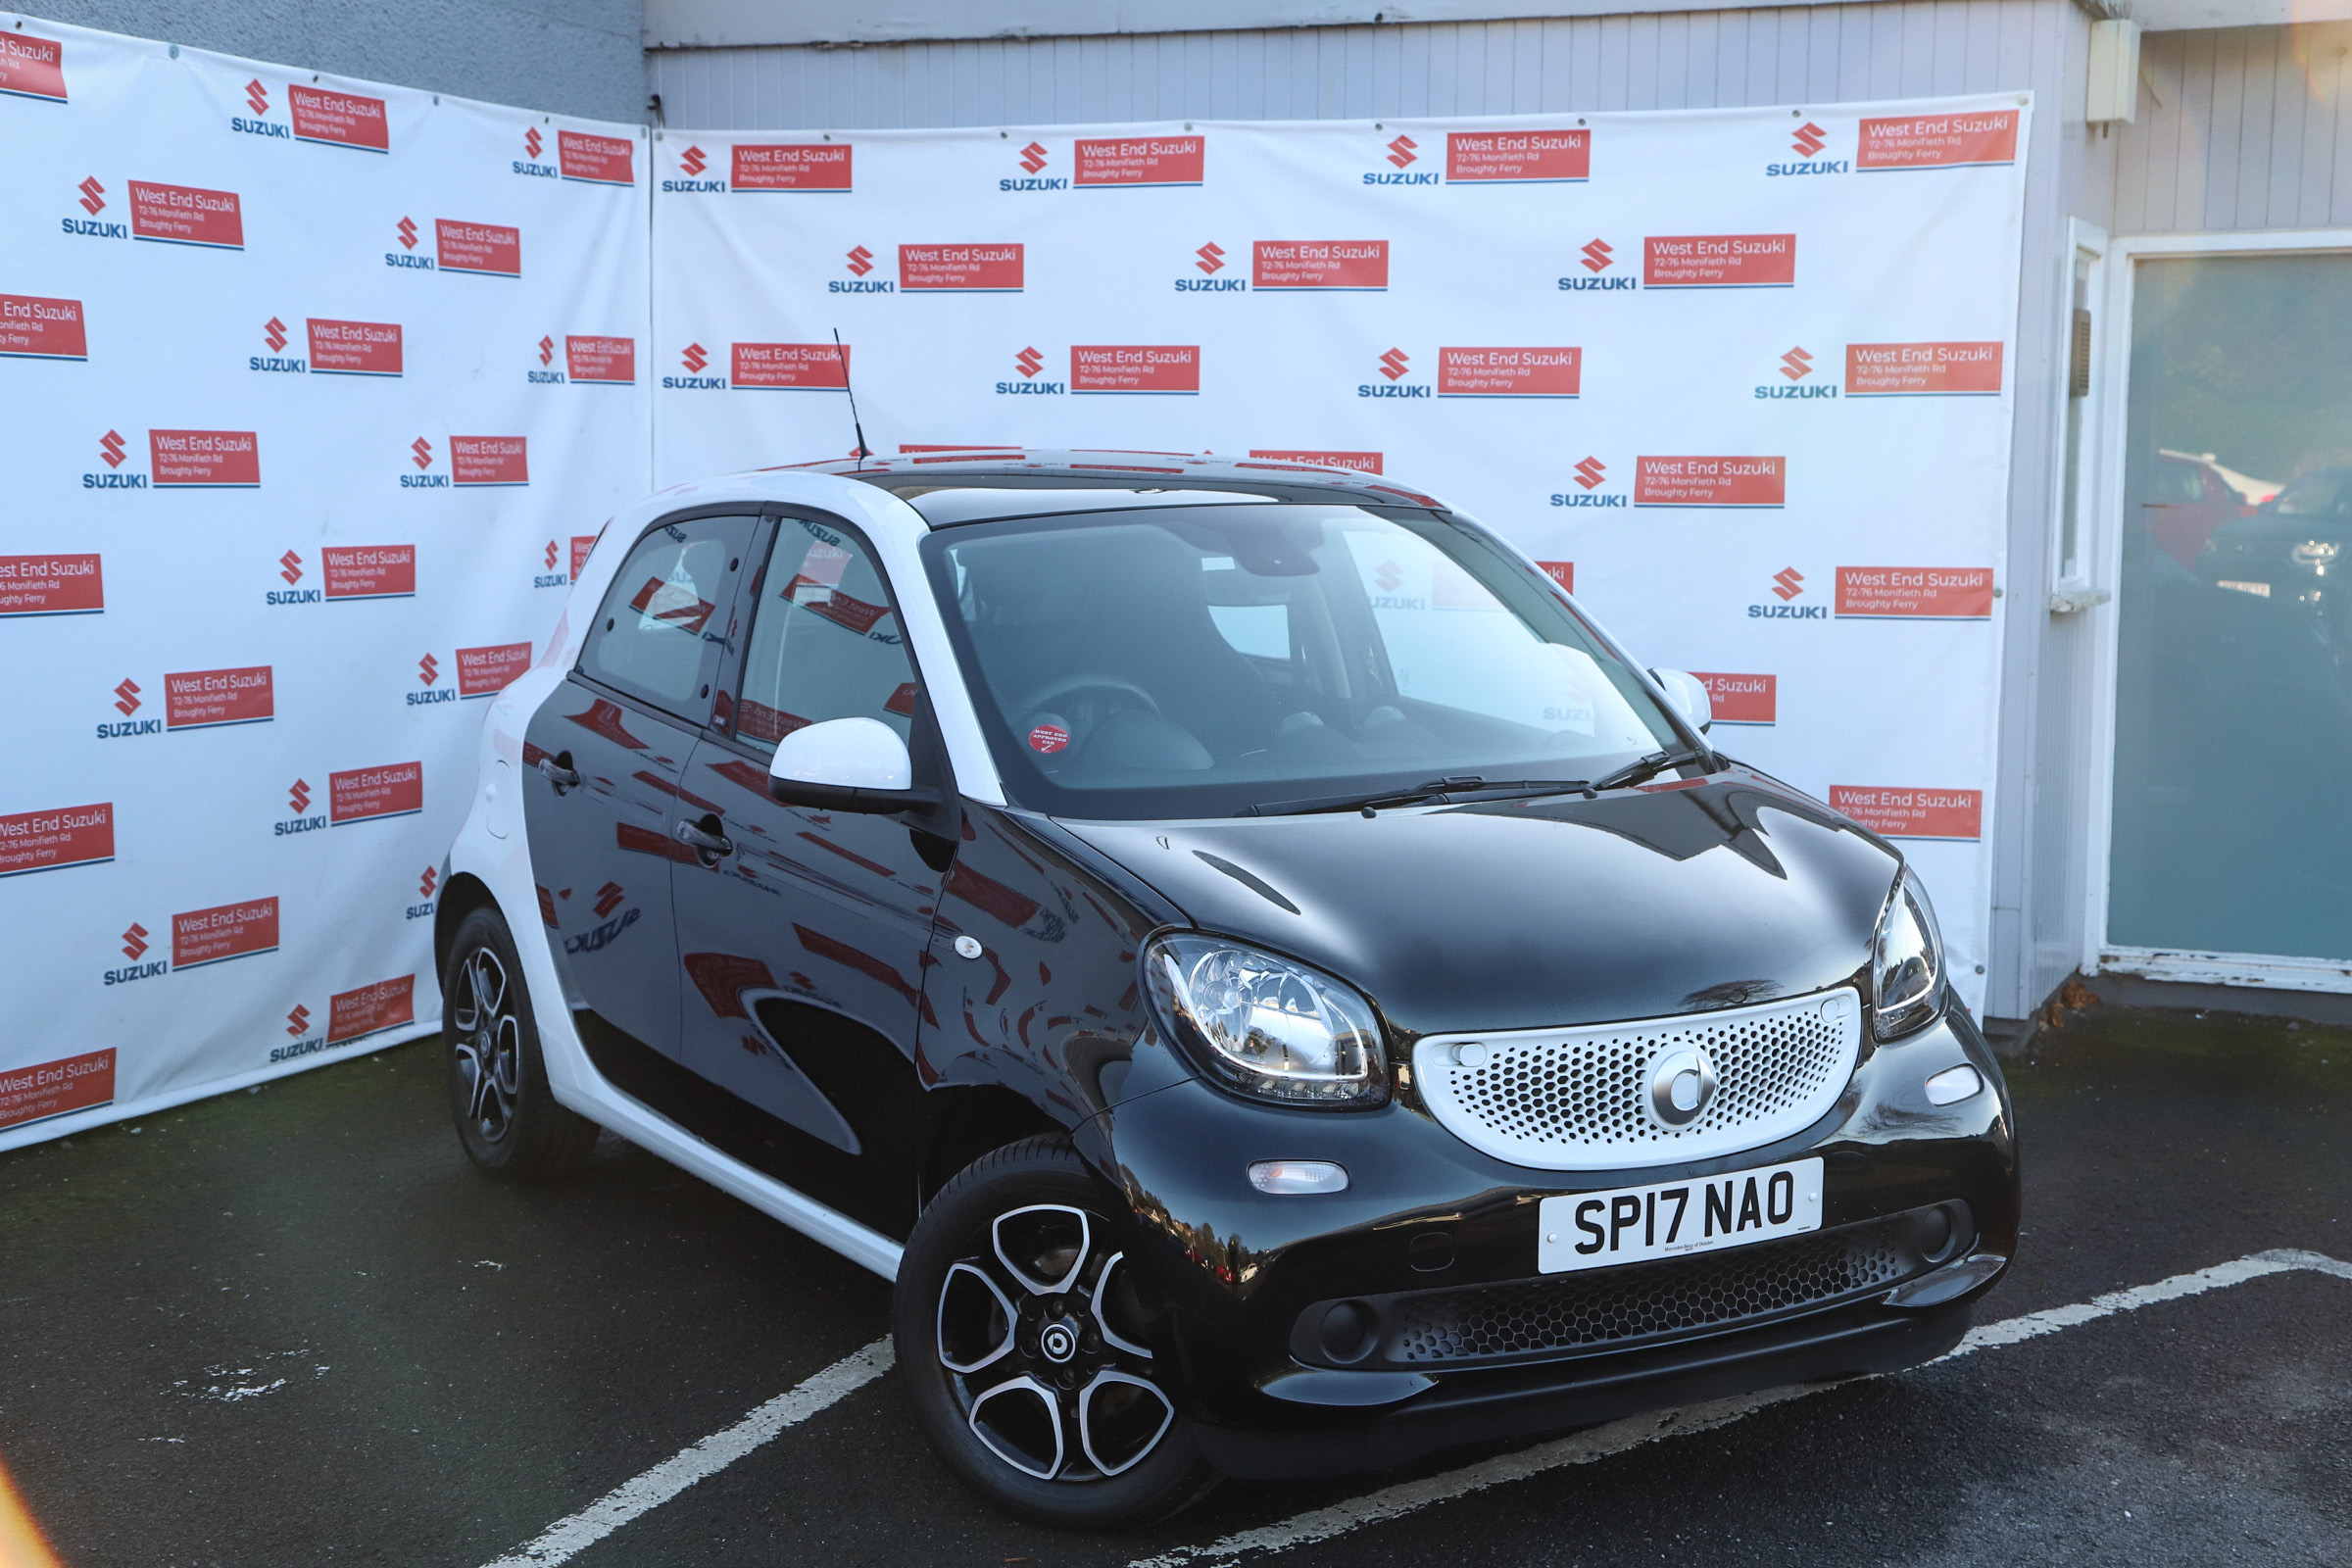 SMART FORFOUR HATCHBACK 0.9 Turbo Prime Premium 5dr Auto